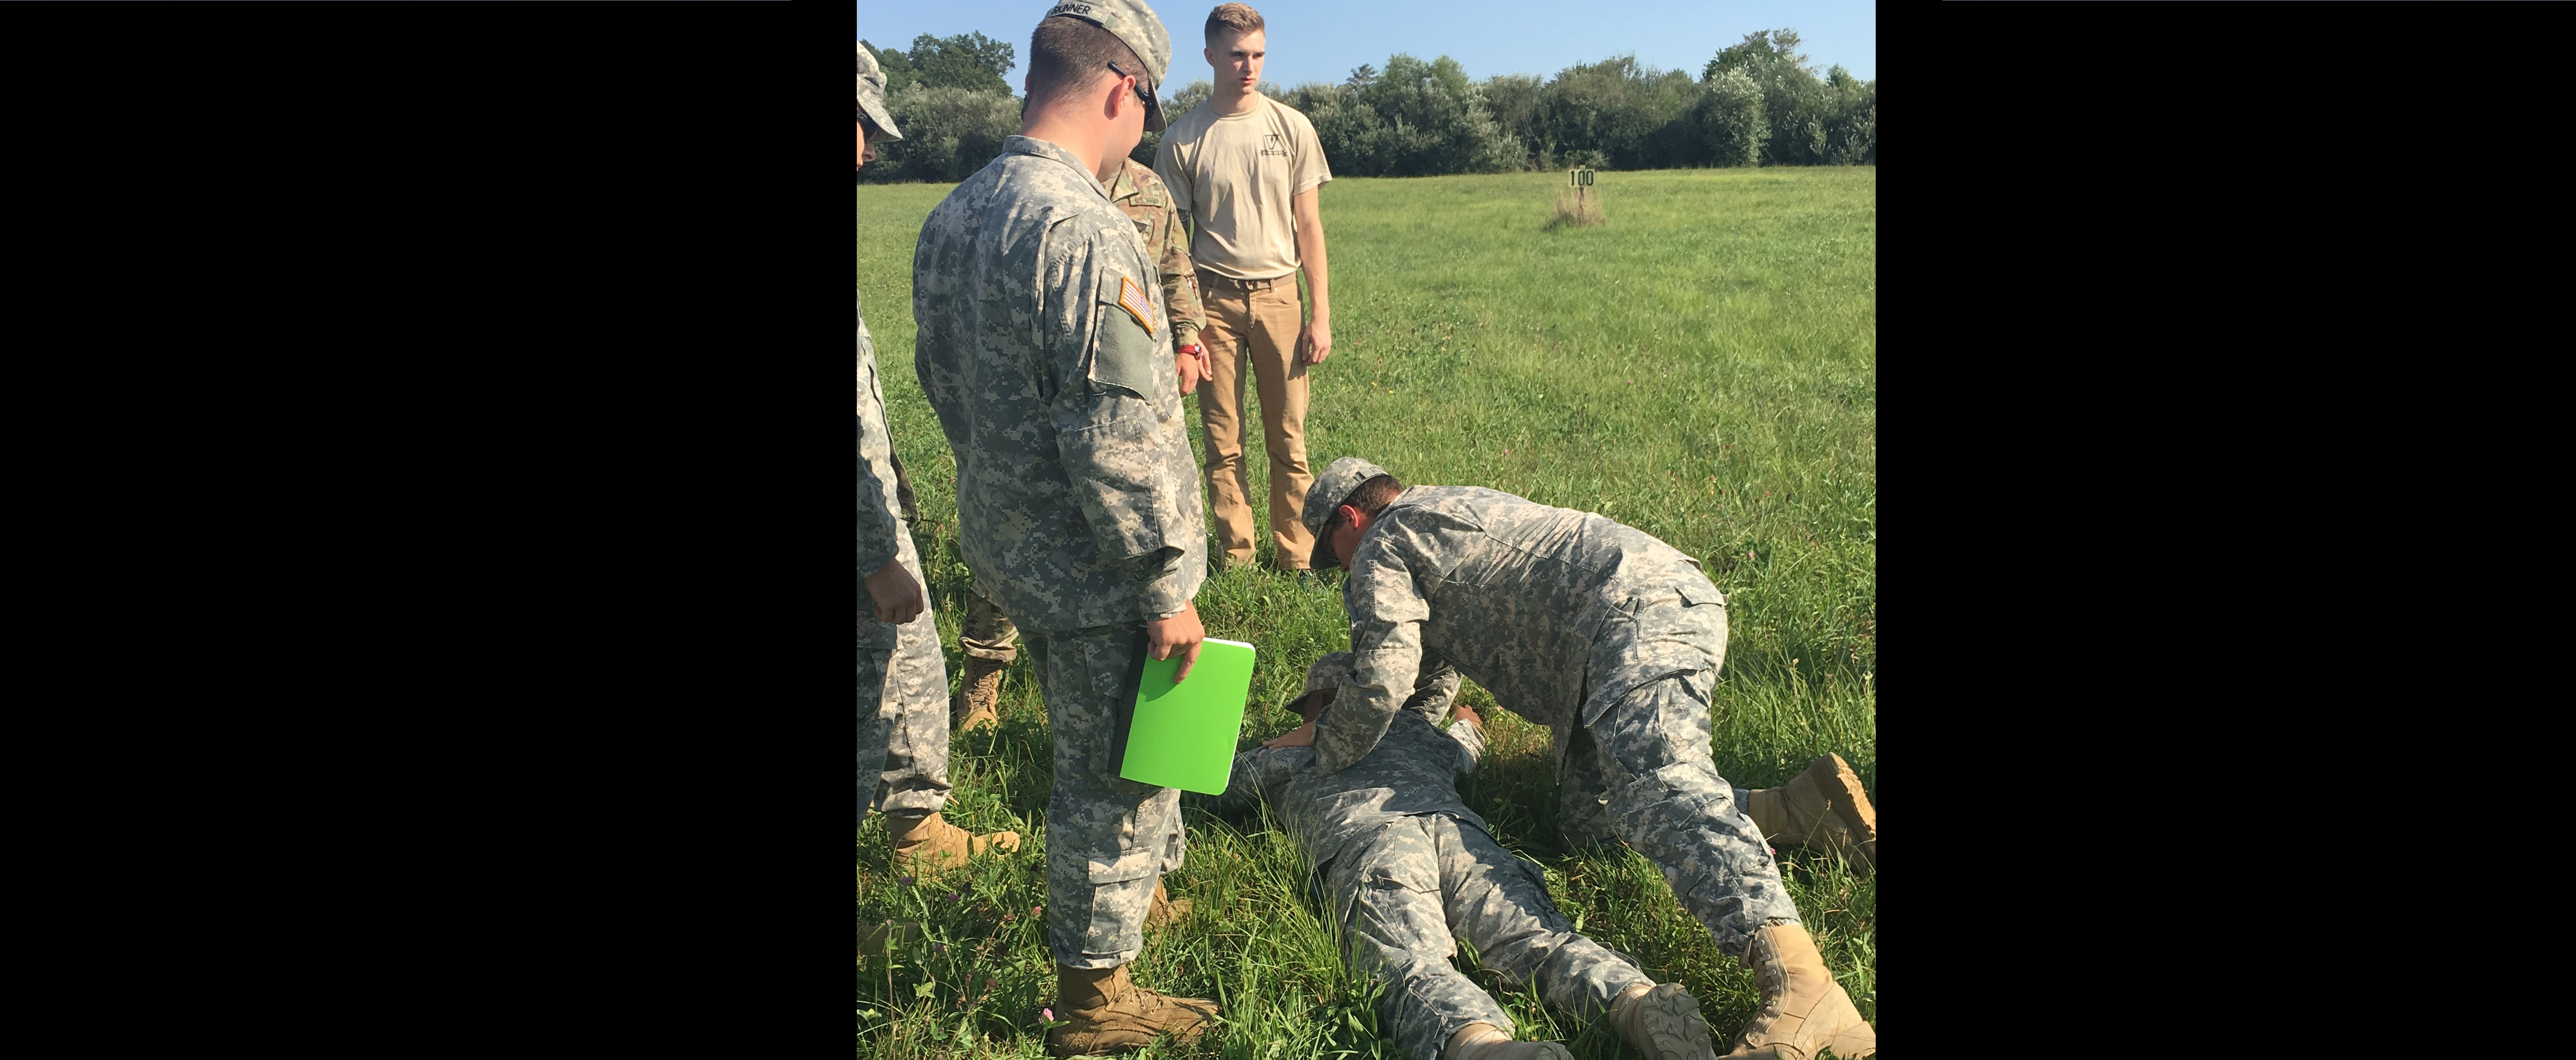 Cadets will all undergo an extensive course on first response and reaction to casualties and various aiding on the battlefield.